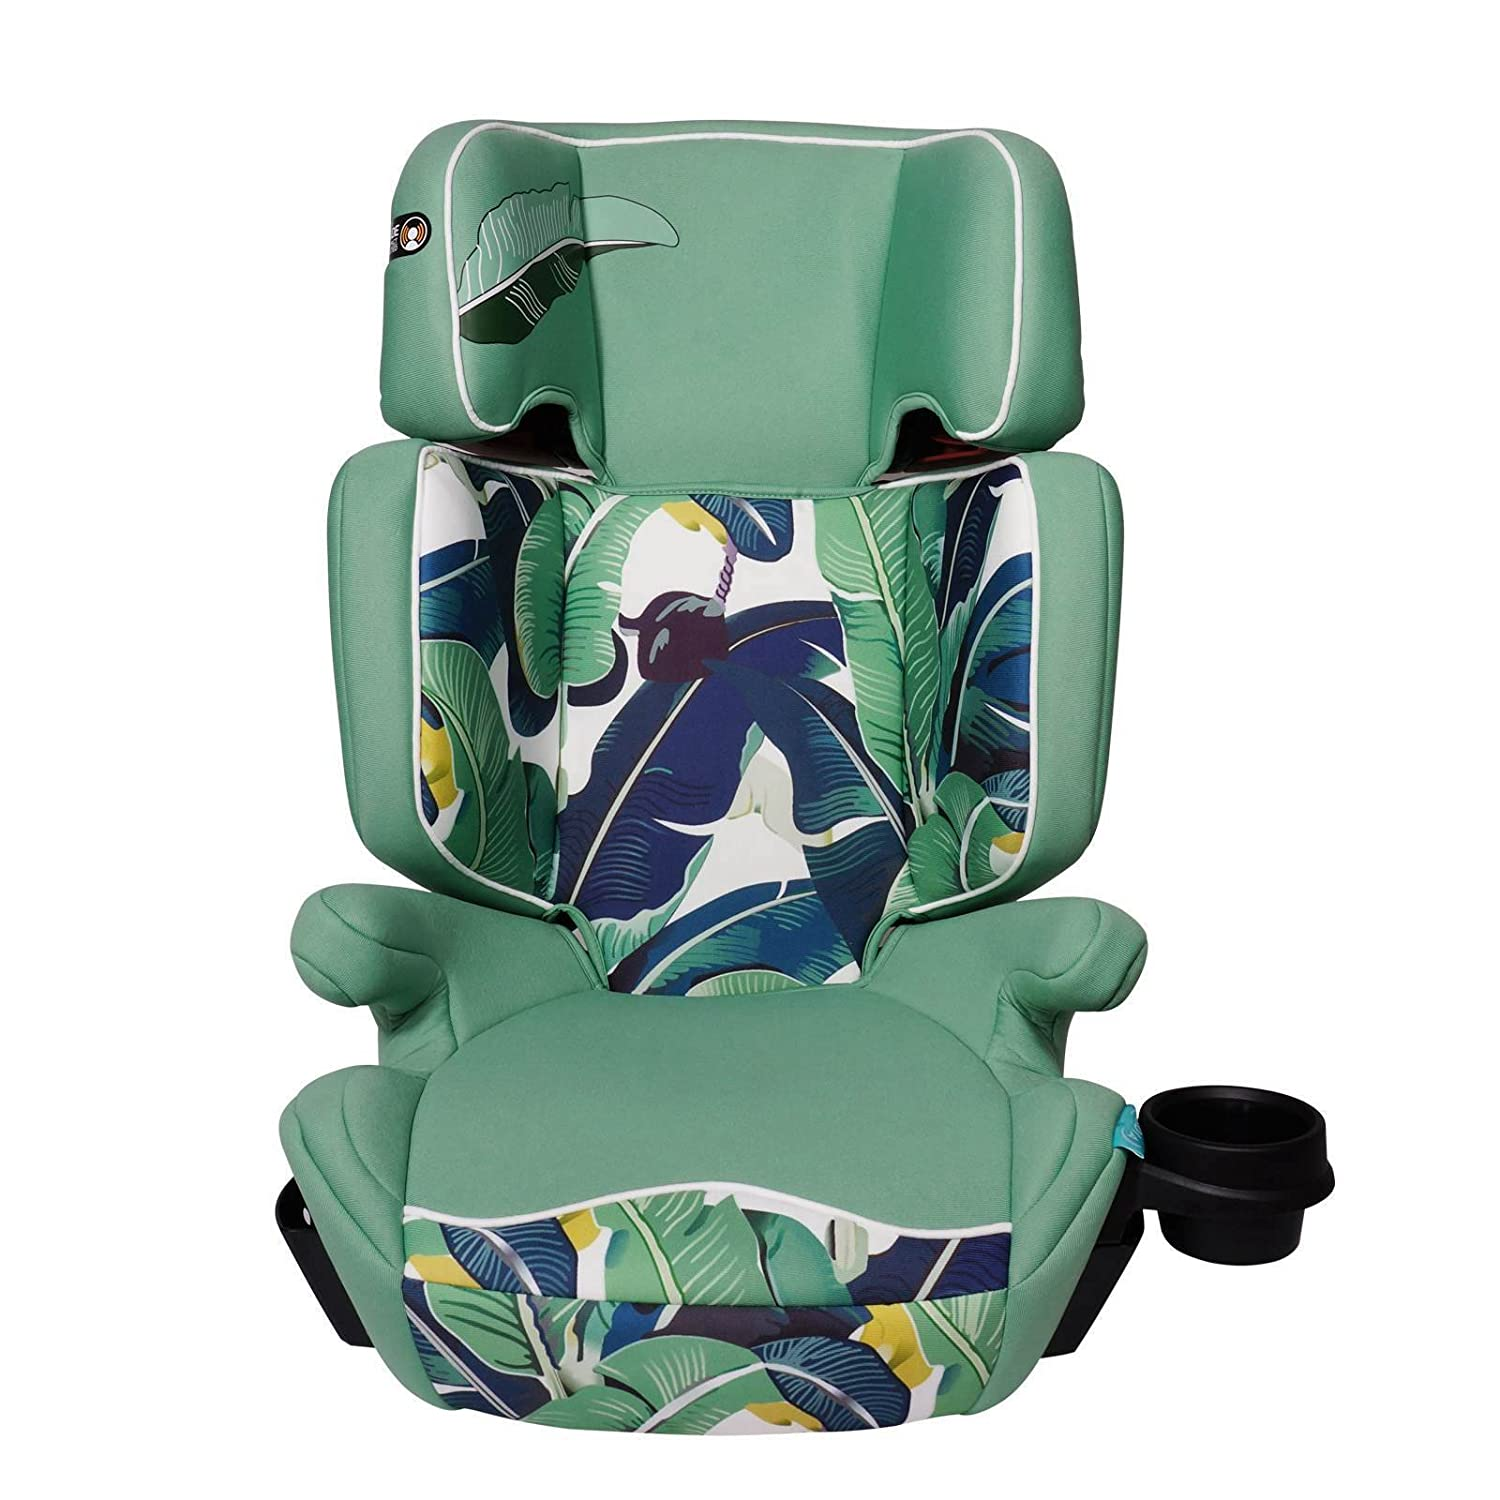 Aidia Explorer 2-in-1 Safety Booster Car Seat, Green/Blue LTD AD01/Amazon